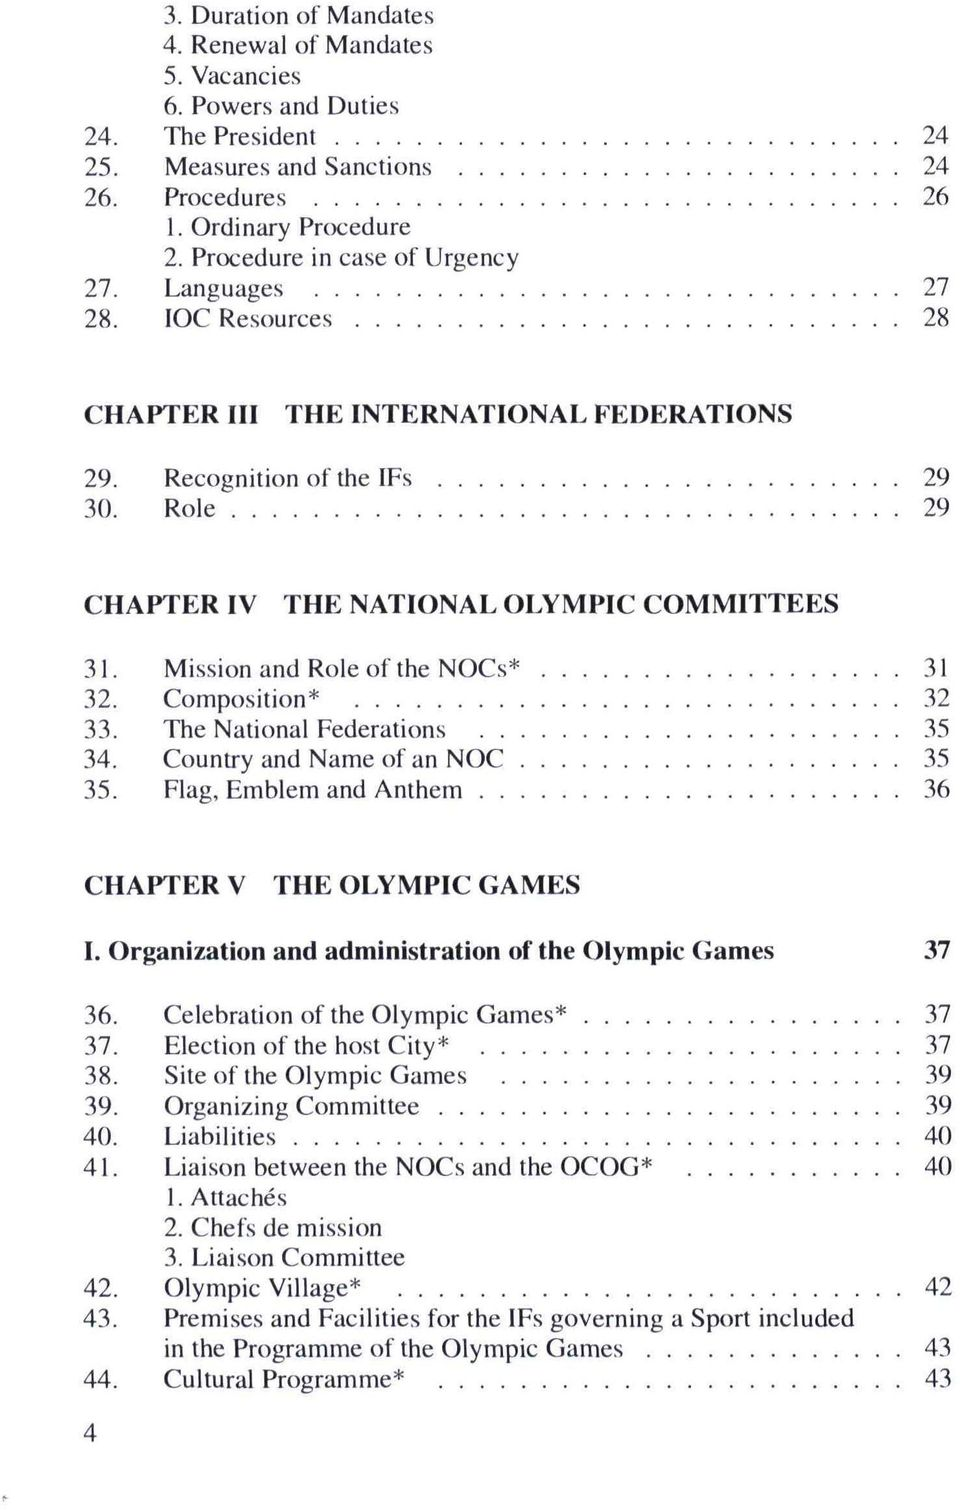 Mission and Role of the NOCs* 31 32. Composition* 32 33. The National Federations 35 34. Counu-y and Name of an NOC 35 35. Flag, Emblem and Anthem 36 CHAPTER V THE OLYMPIC GAMES I.